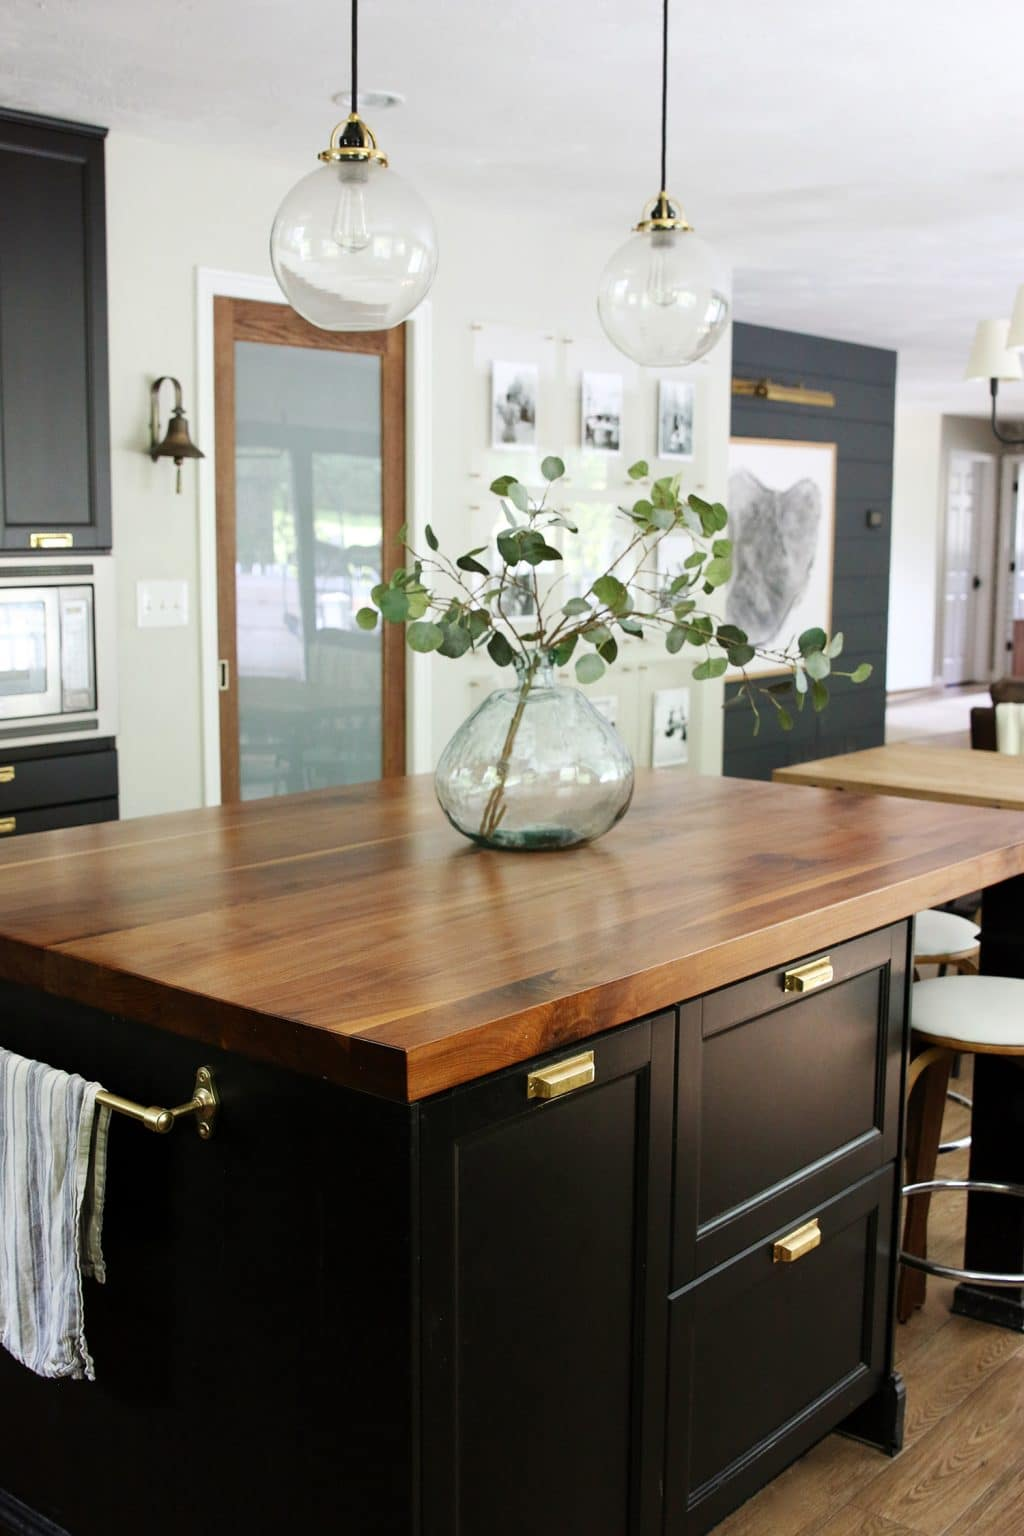 Kitchen Butcher Block Cabinets : A Big Sale on Butcher Block Countertops! (You can use them everywhere!) - Chris Loves Julia